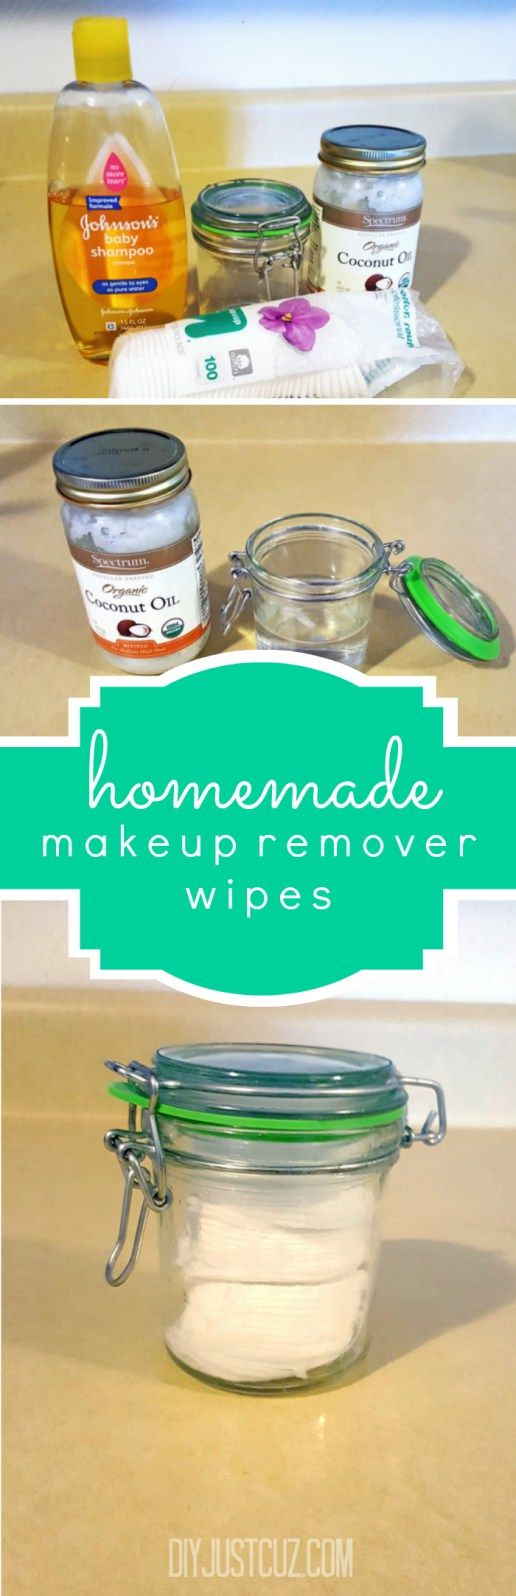 Homemade Makeup Remover Wipes (With images) Homemade